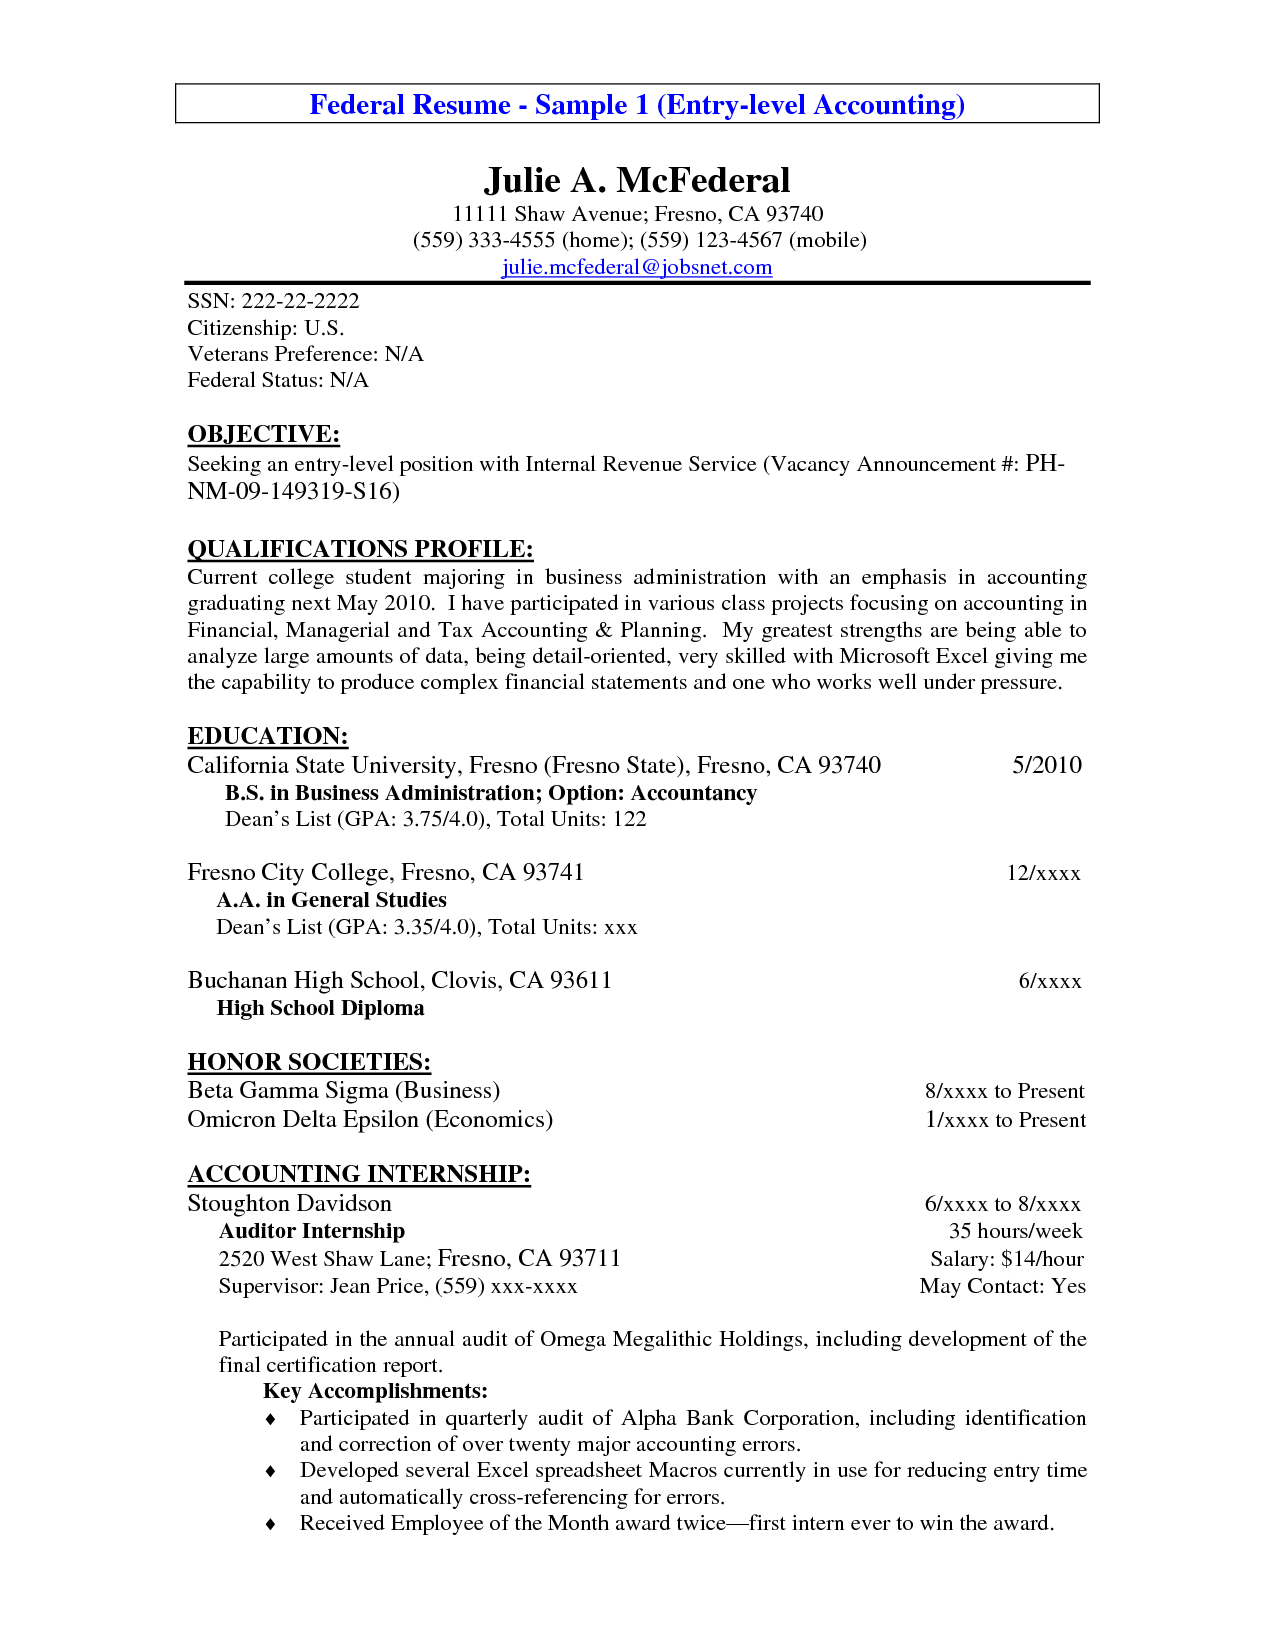 A Good Objective For A Resume Accounting Resume Objectives Read More  Httpwww